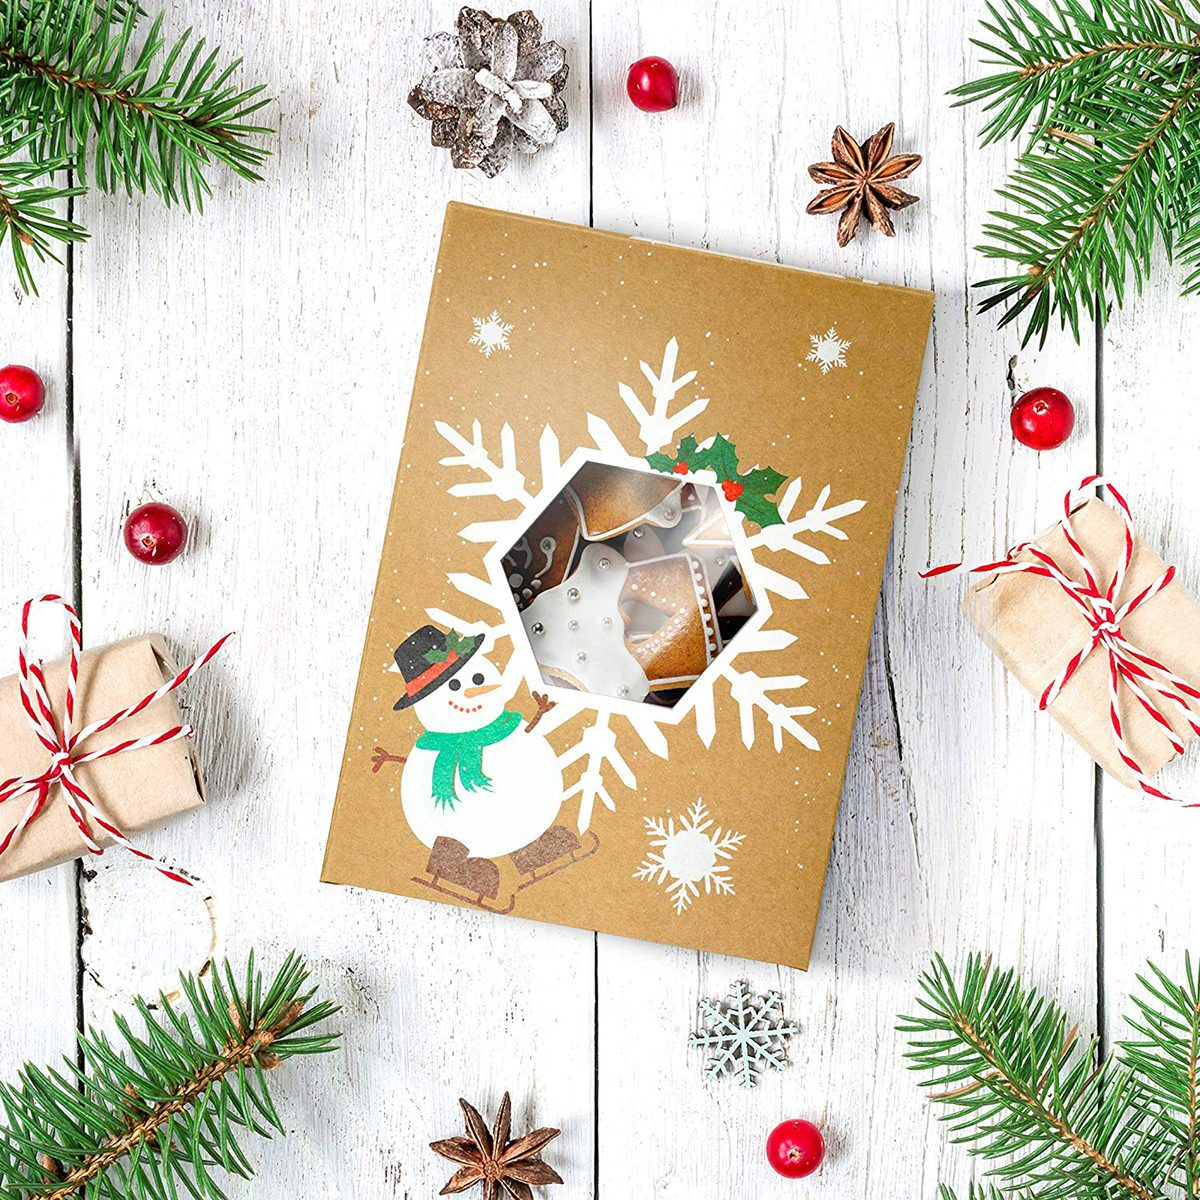 10 Festive Packaging Ideas for Your Food Gifts